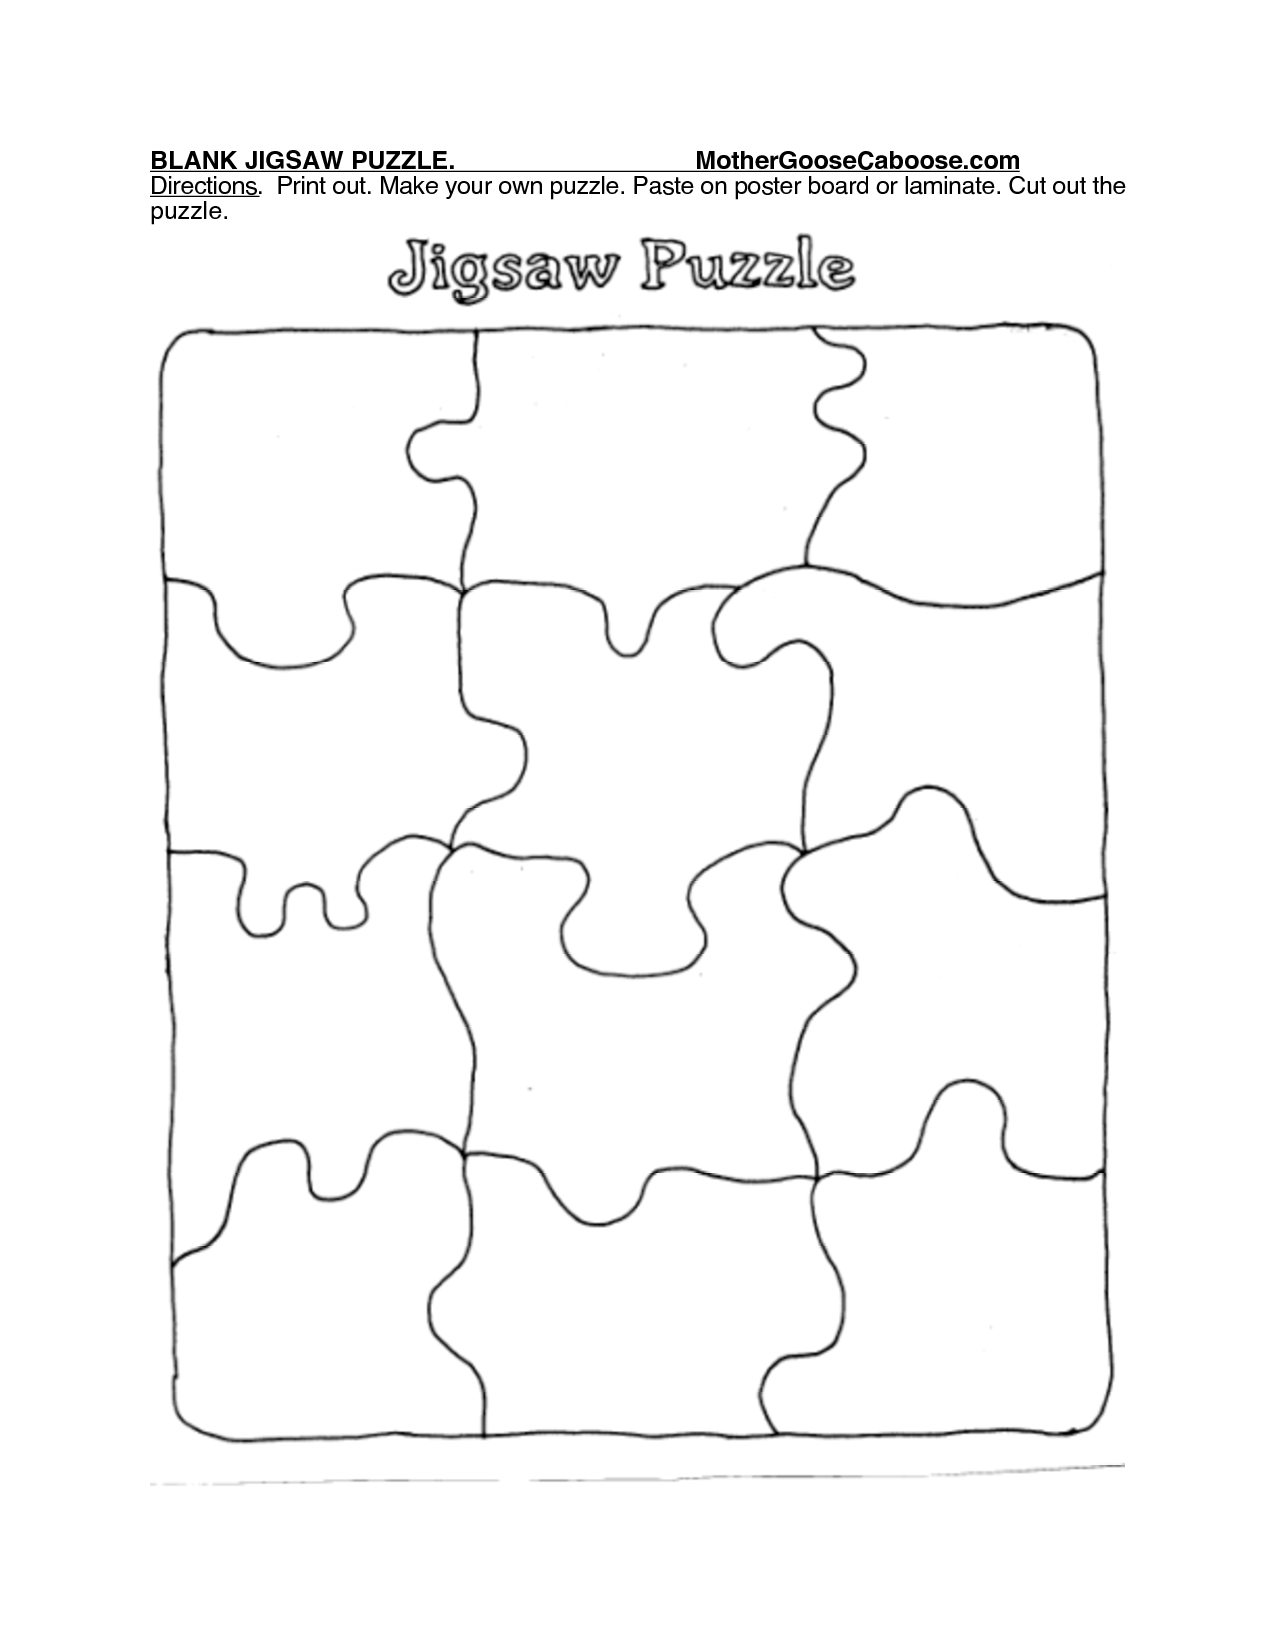 8 Images of Printable Blank Jigsaw Puzzles